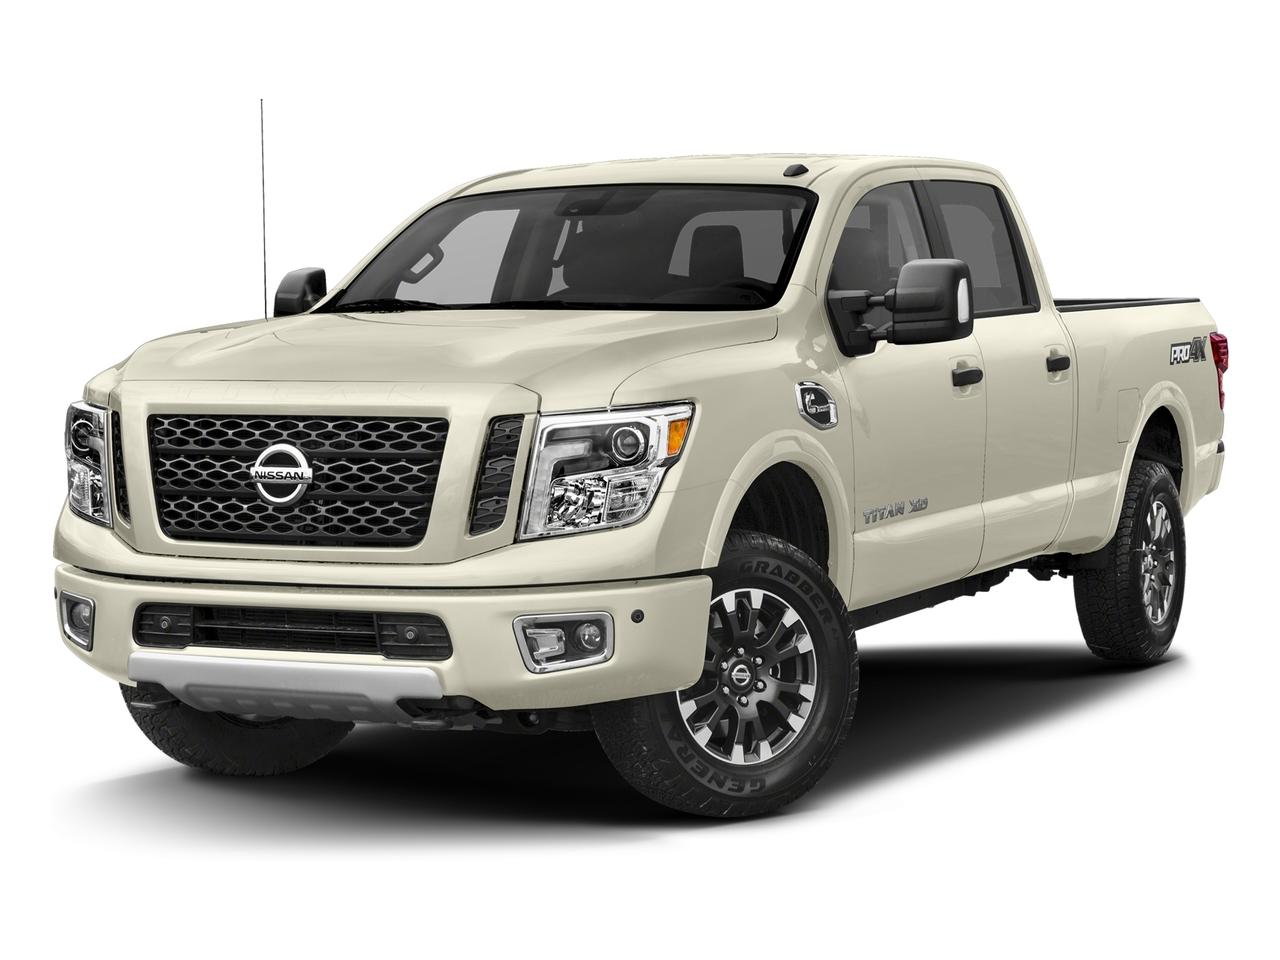 2016 Nissan Titan XD Vehicle Photo in Colorado Springs, CO 80905